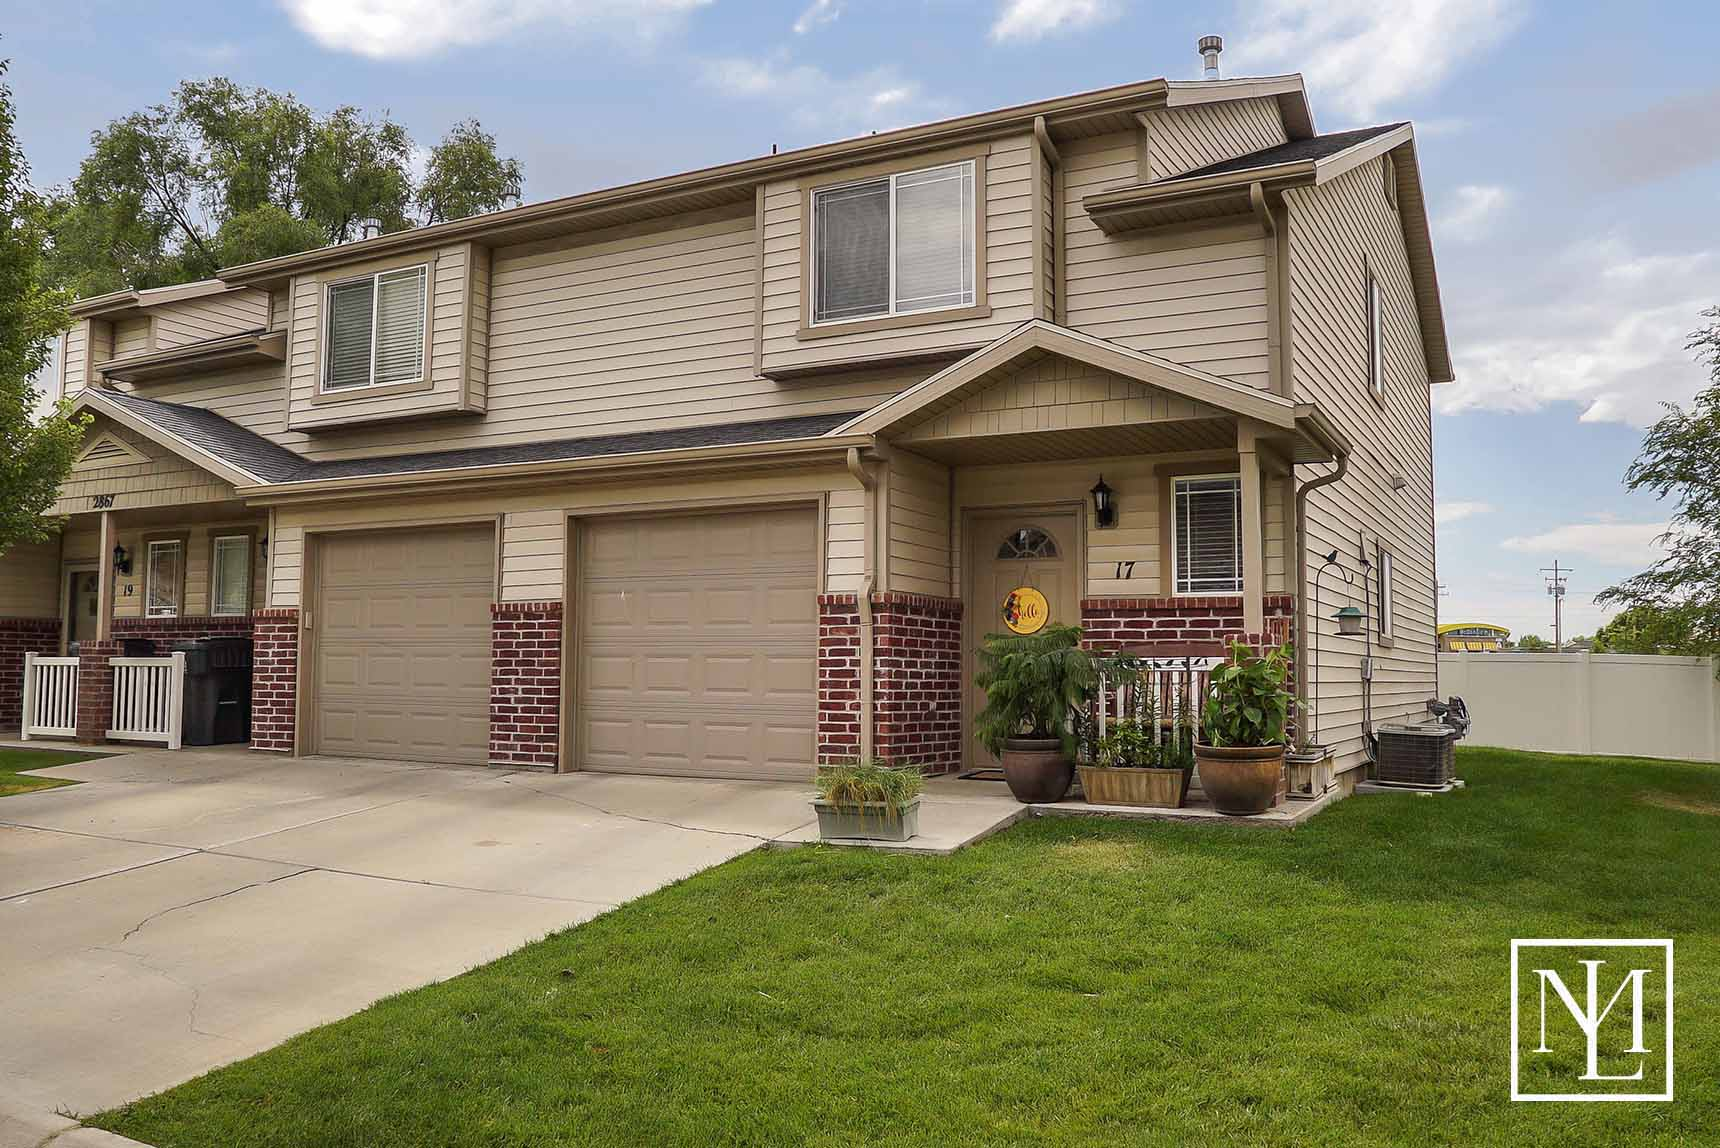 2867 E 3975 S #17 West Haven, UT 84401 02